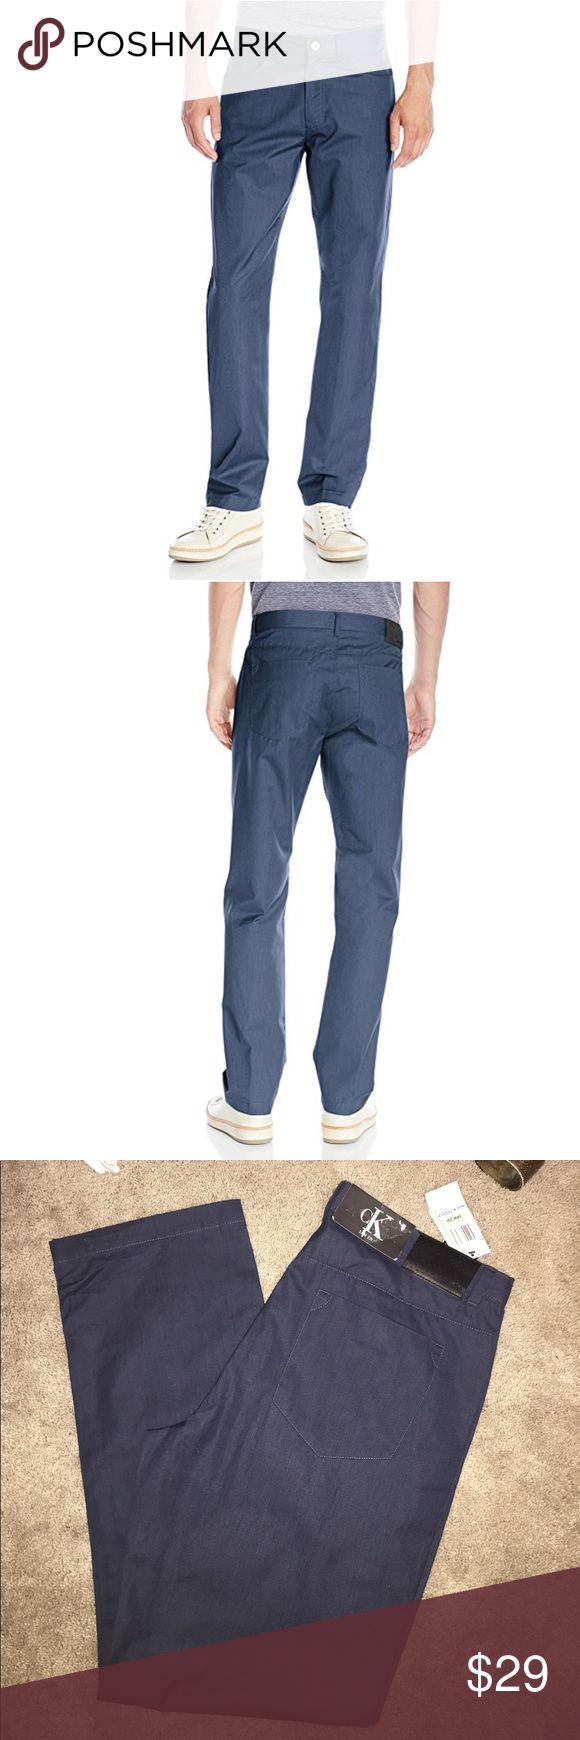 Calvin Klein Men's Twill Pants Dress blue. These modern four pocket twill pants feature a casual fit with a belt loop waistband and a button and zip fly enclosure. 100% Cotton (34Wx32L) Calvin Klein Pants